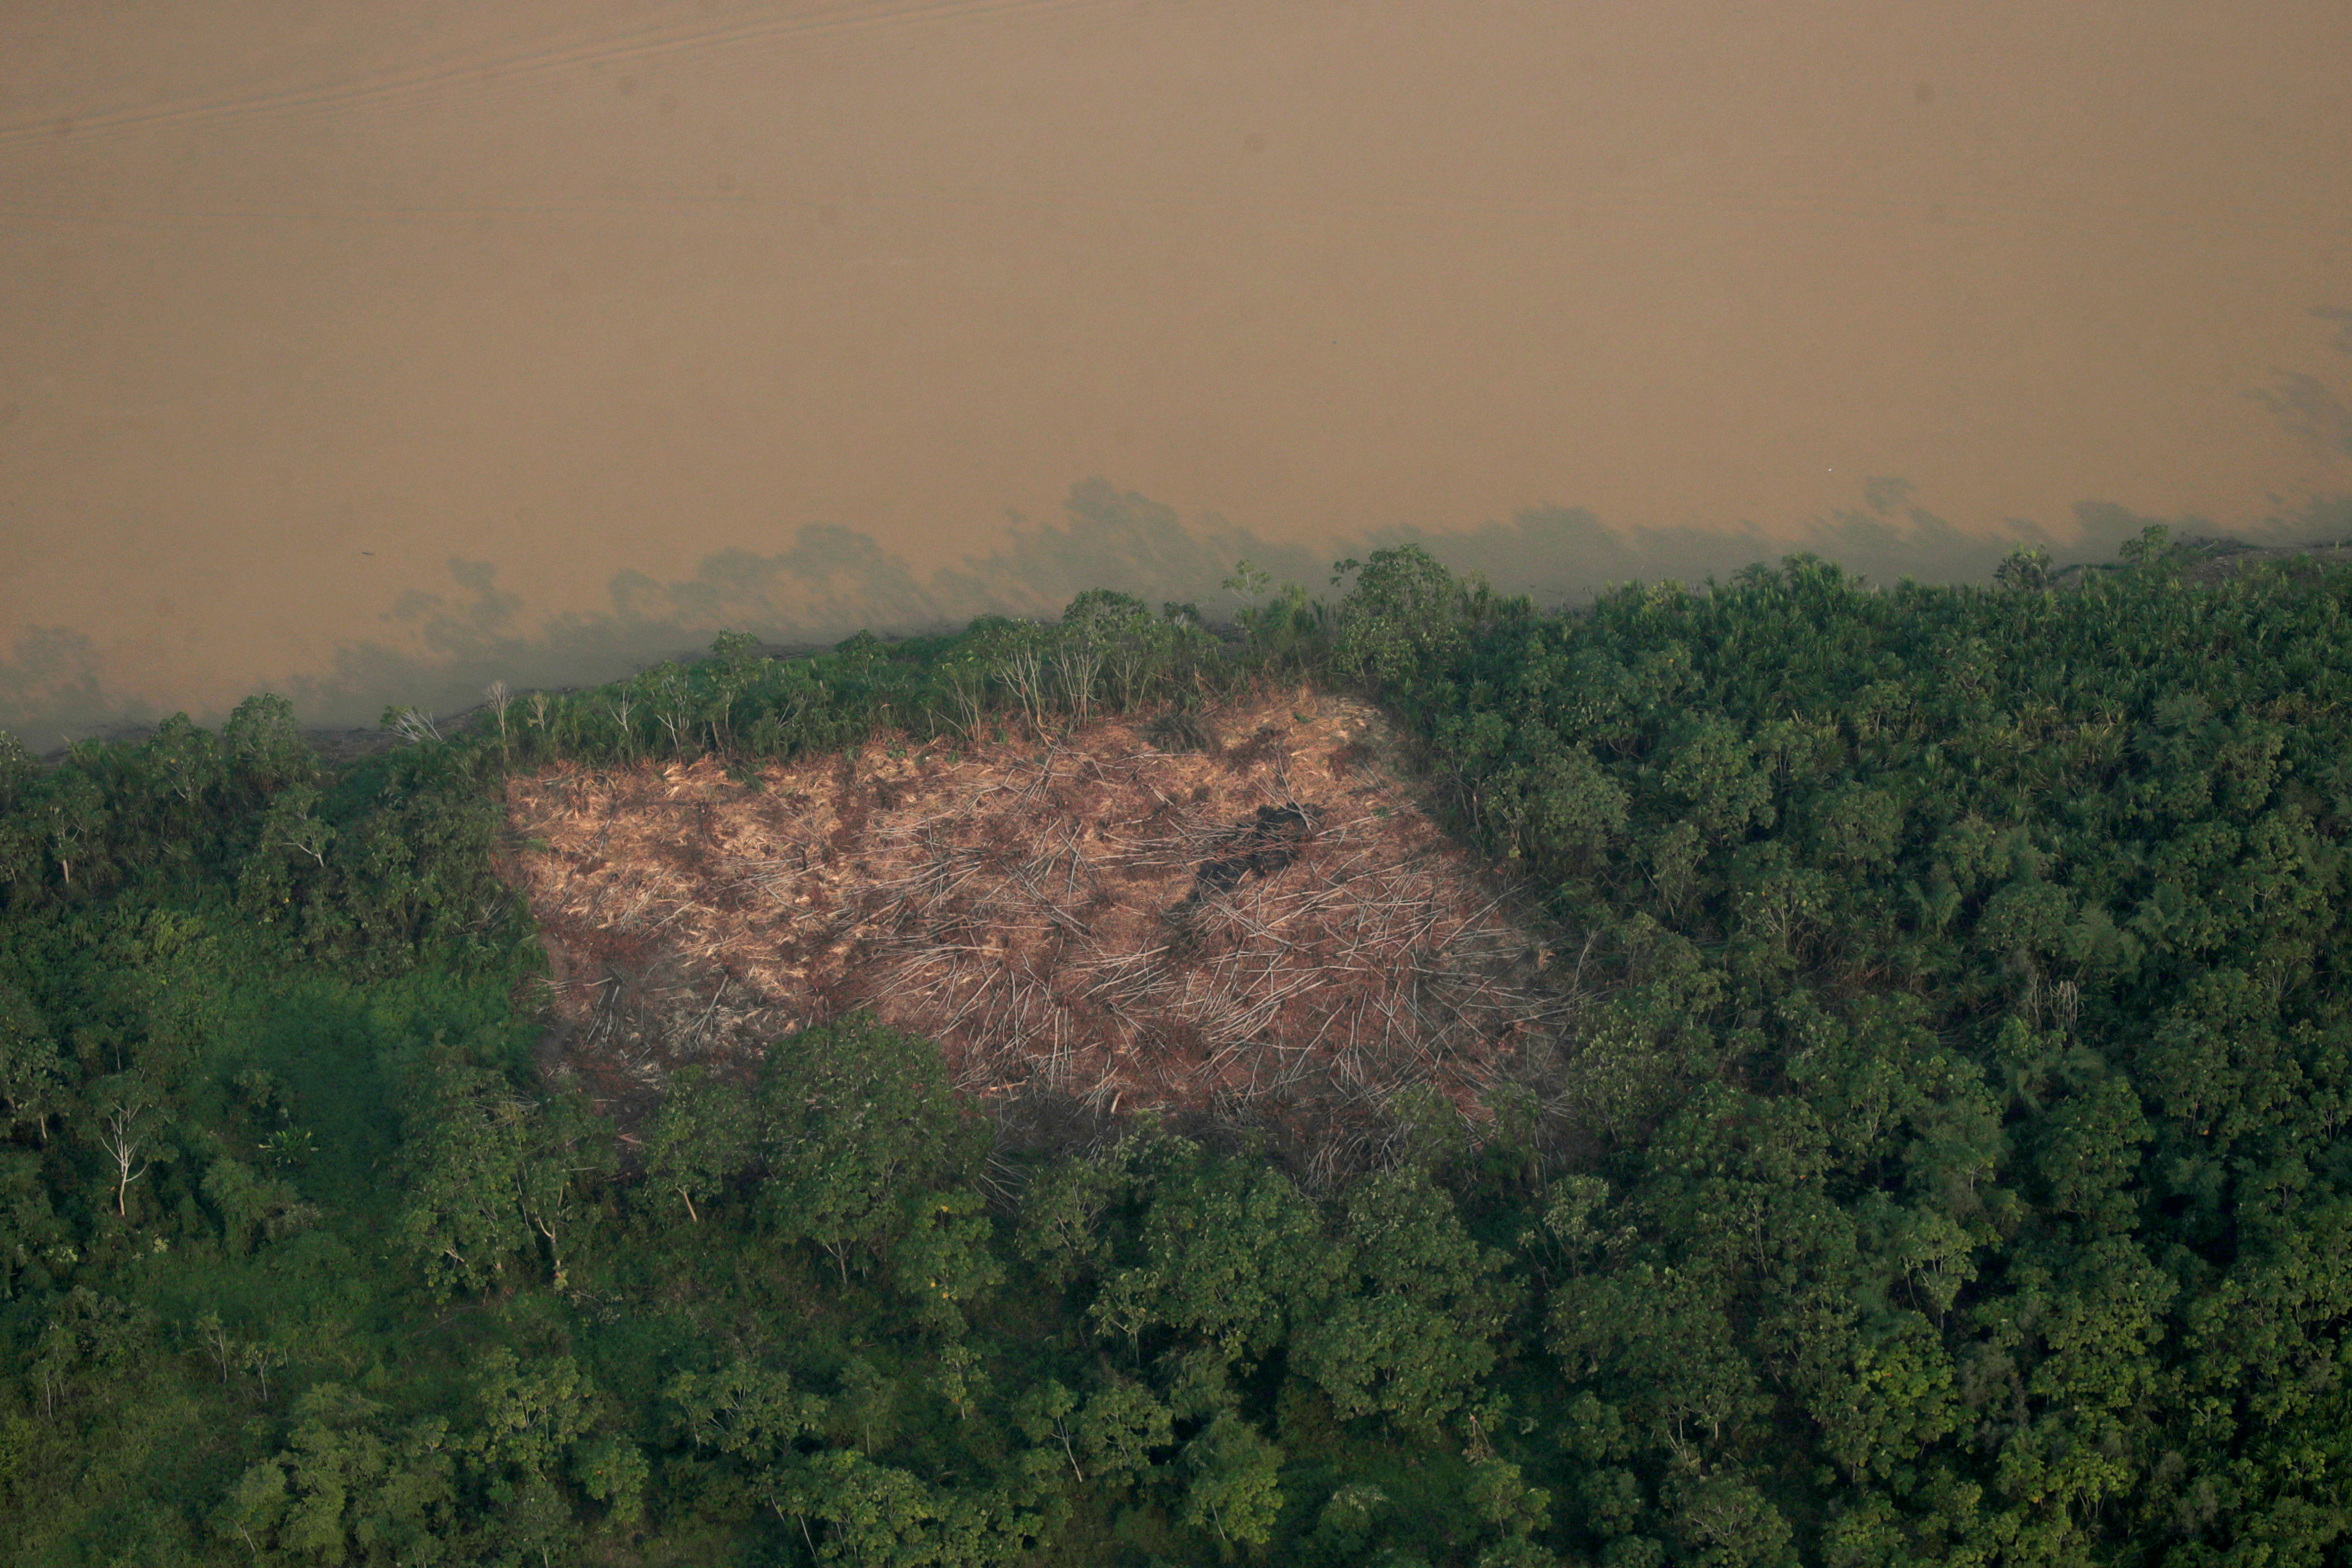 An aerial view shows a deforested plot of the Amazon near Porto Velho, Rondonia State, Brazil August 21, 2019. REUTERS/Ueslei Marcelino